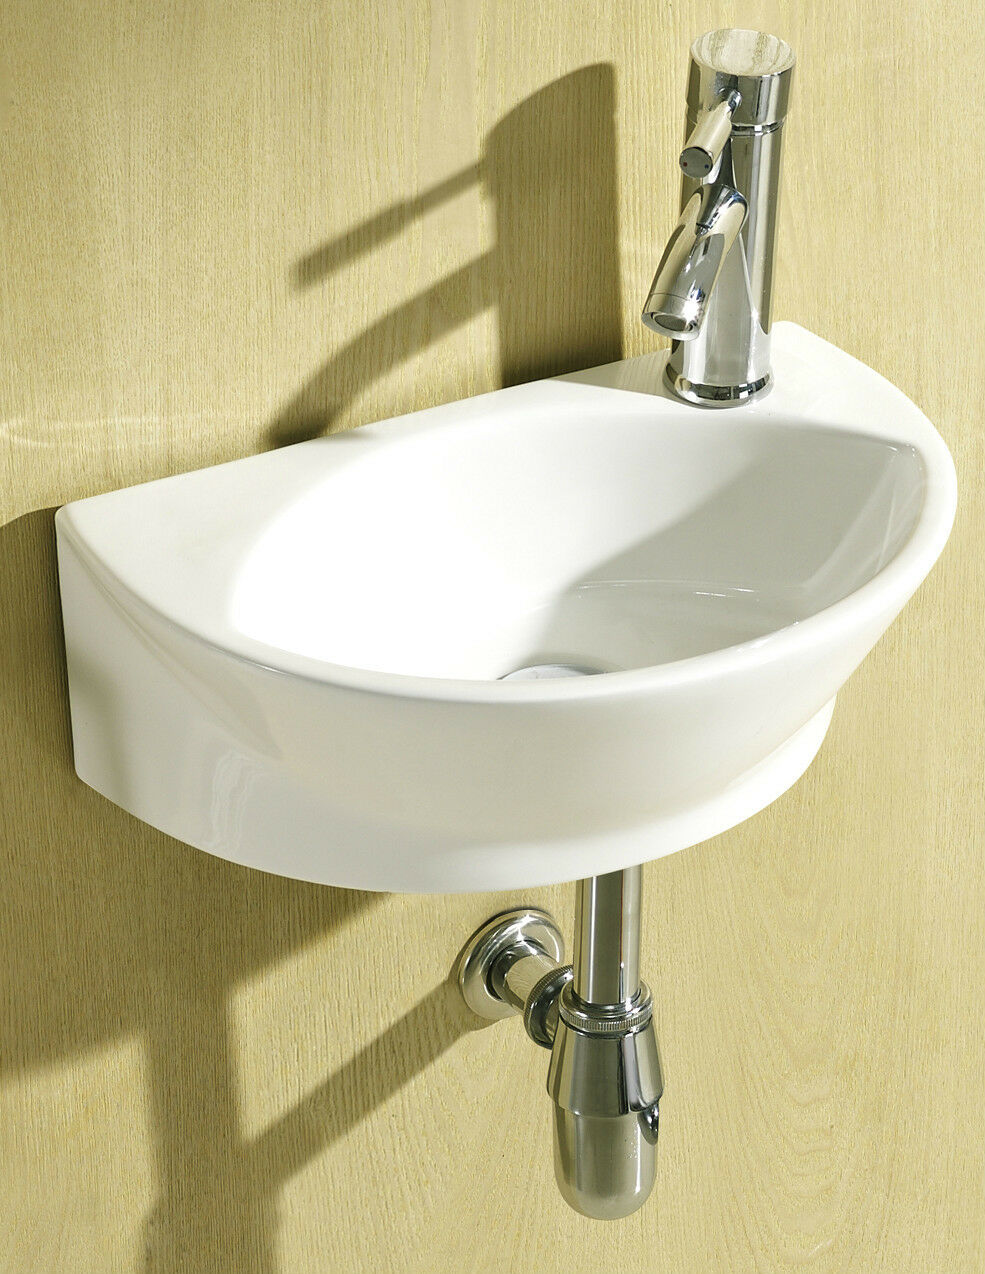 Small Bathroom Wall Hung Sinks : Small compact round d shaped cloakroom basin bathroom sink